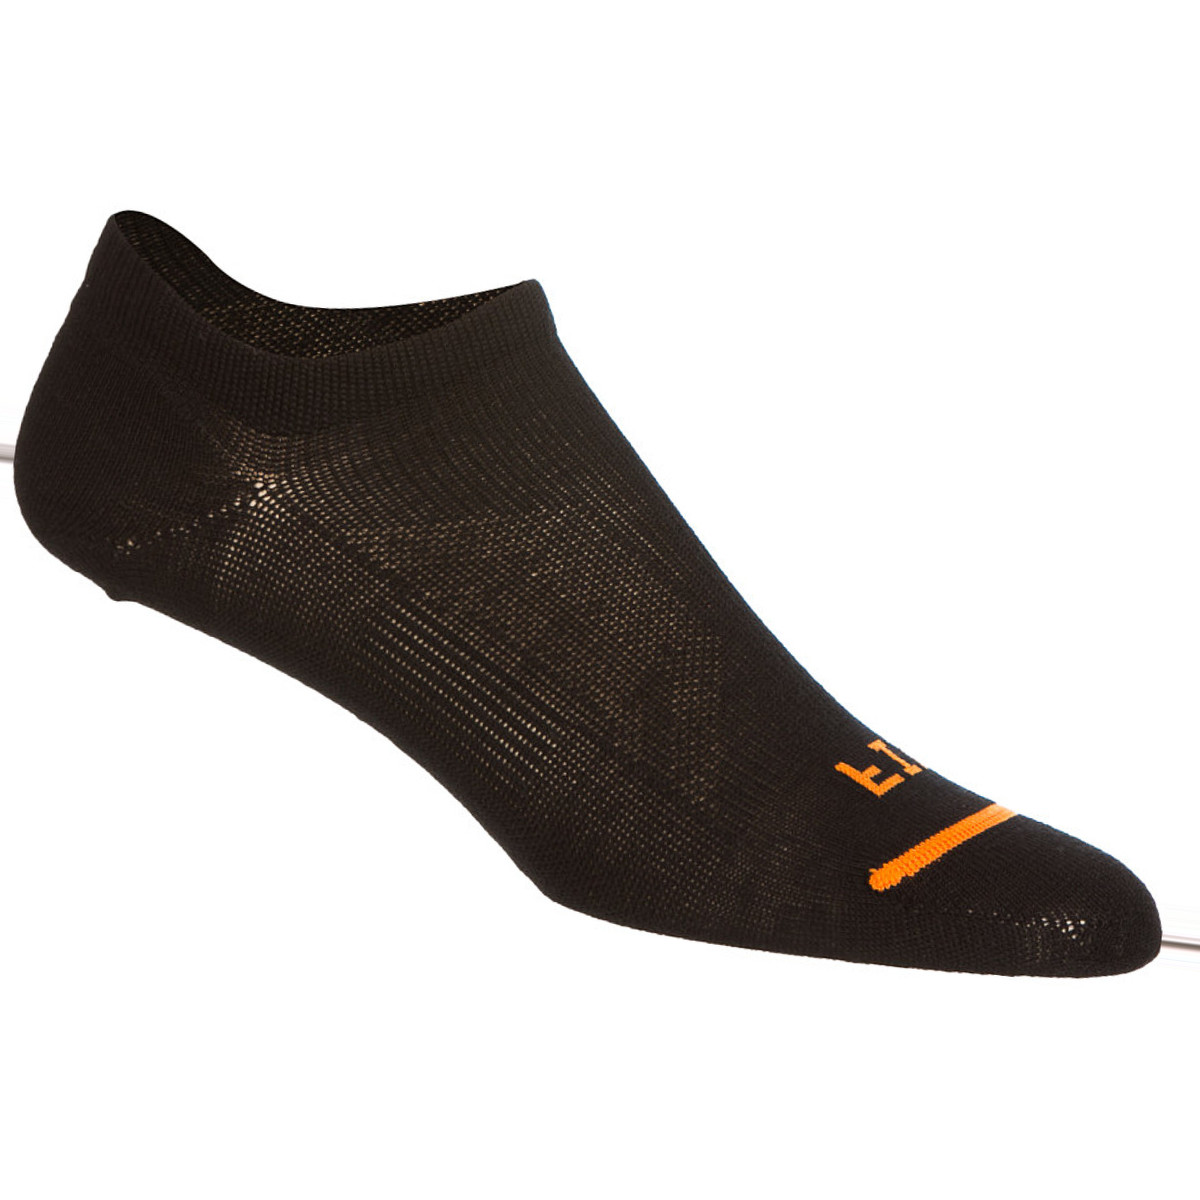 FITS Ultra Light Runner No Show Socks - Men's